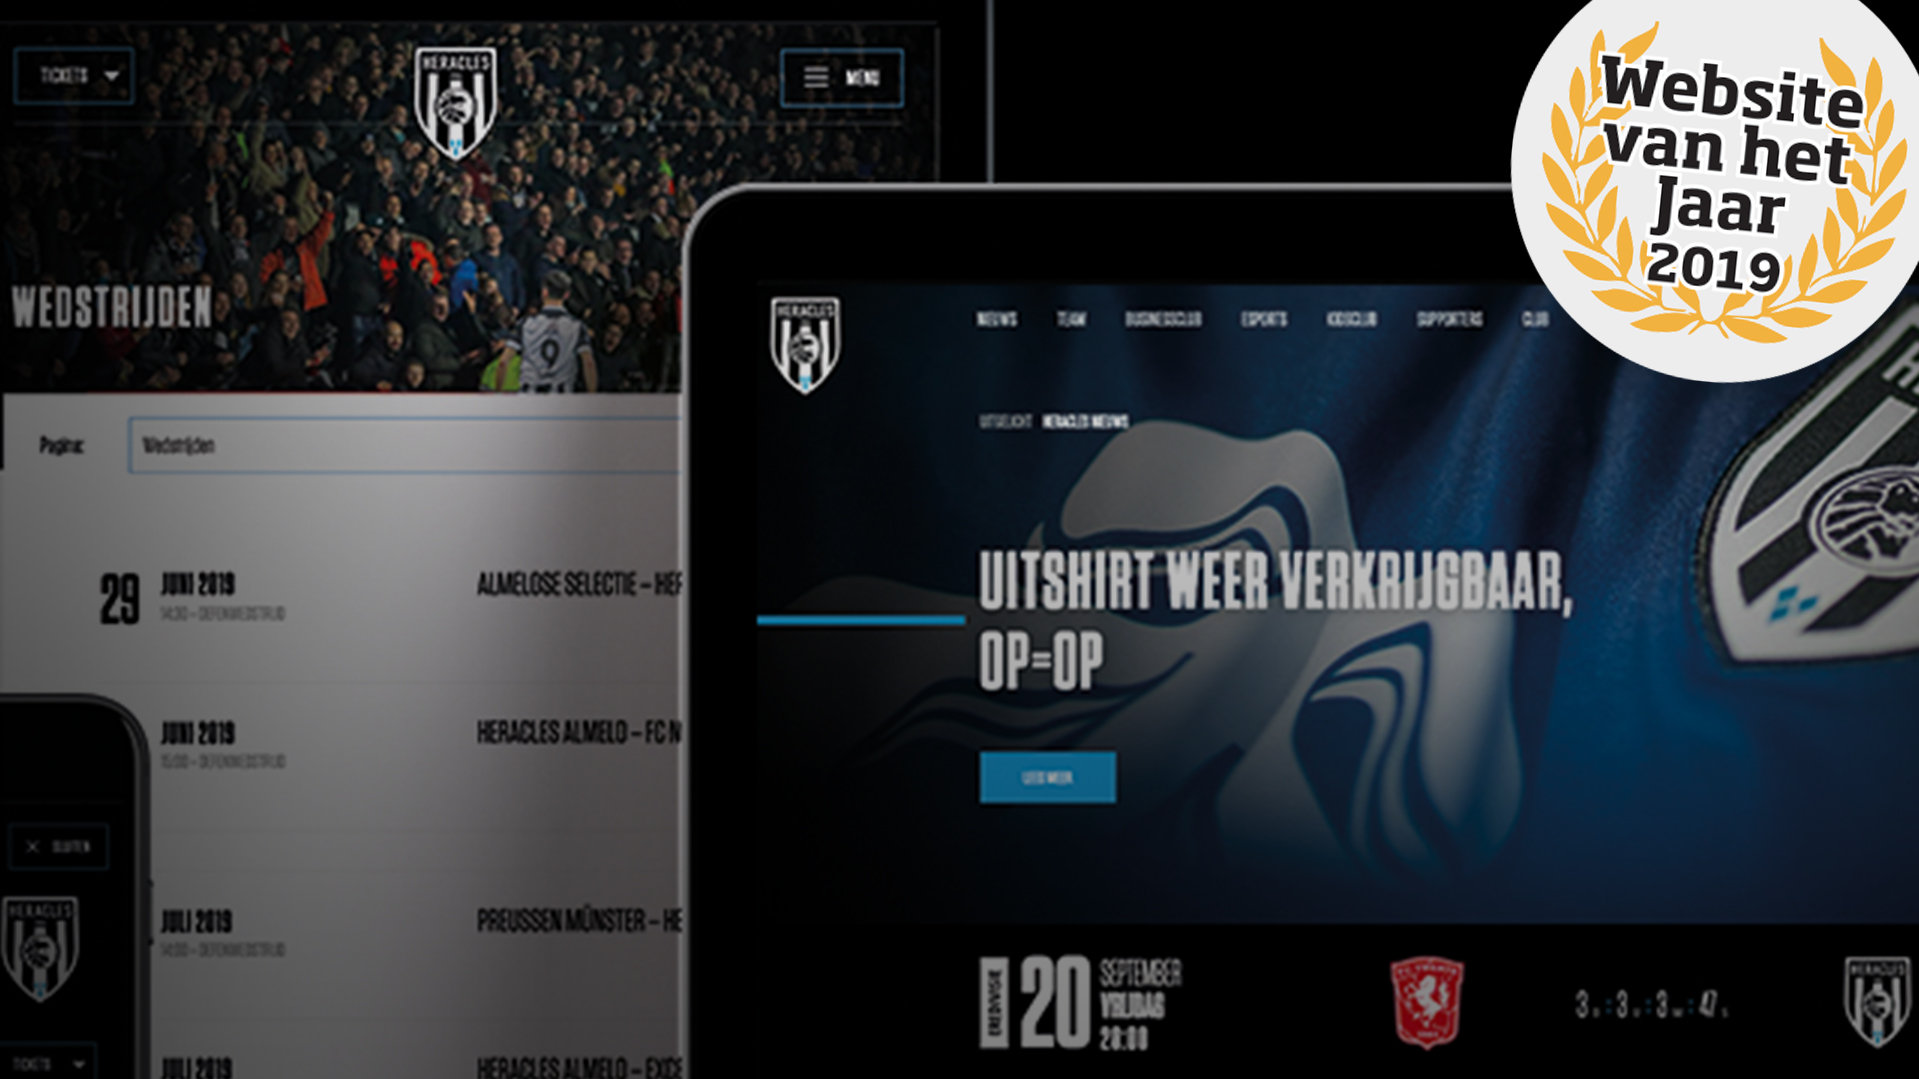 Heracles Almelo is in the running to win website of the year